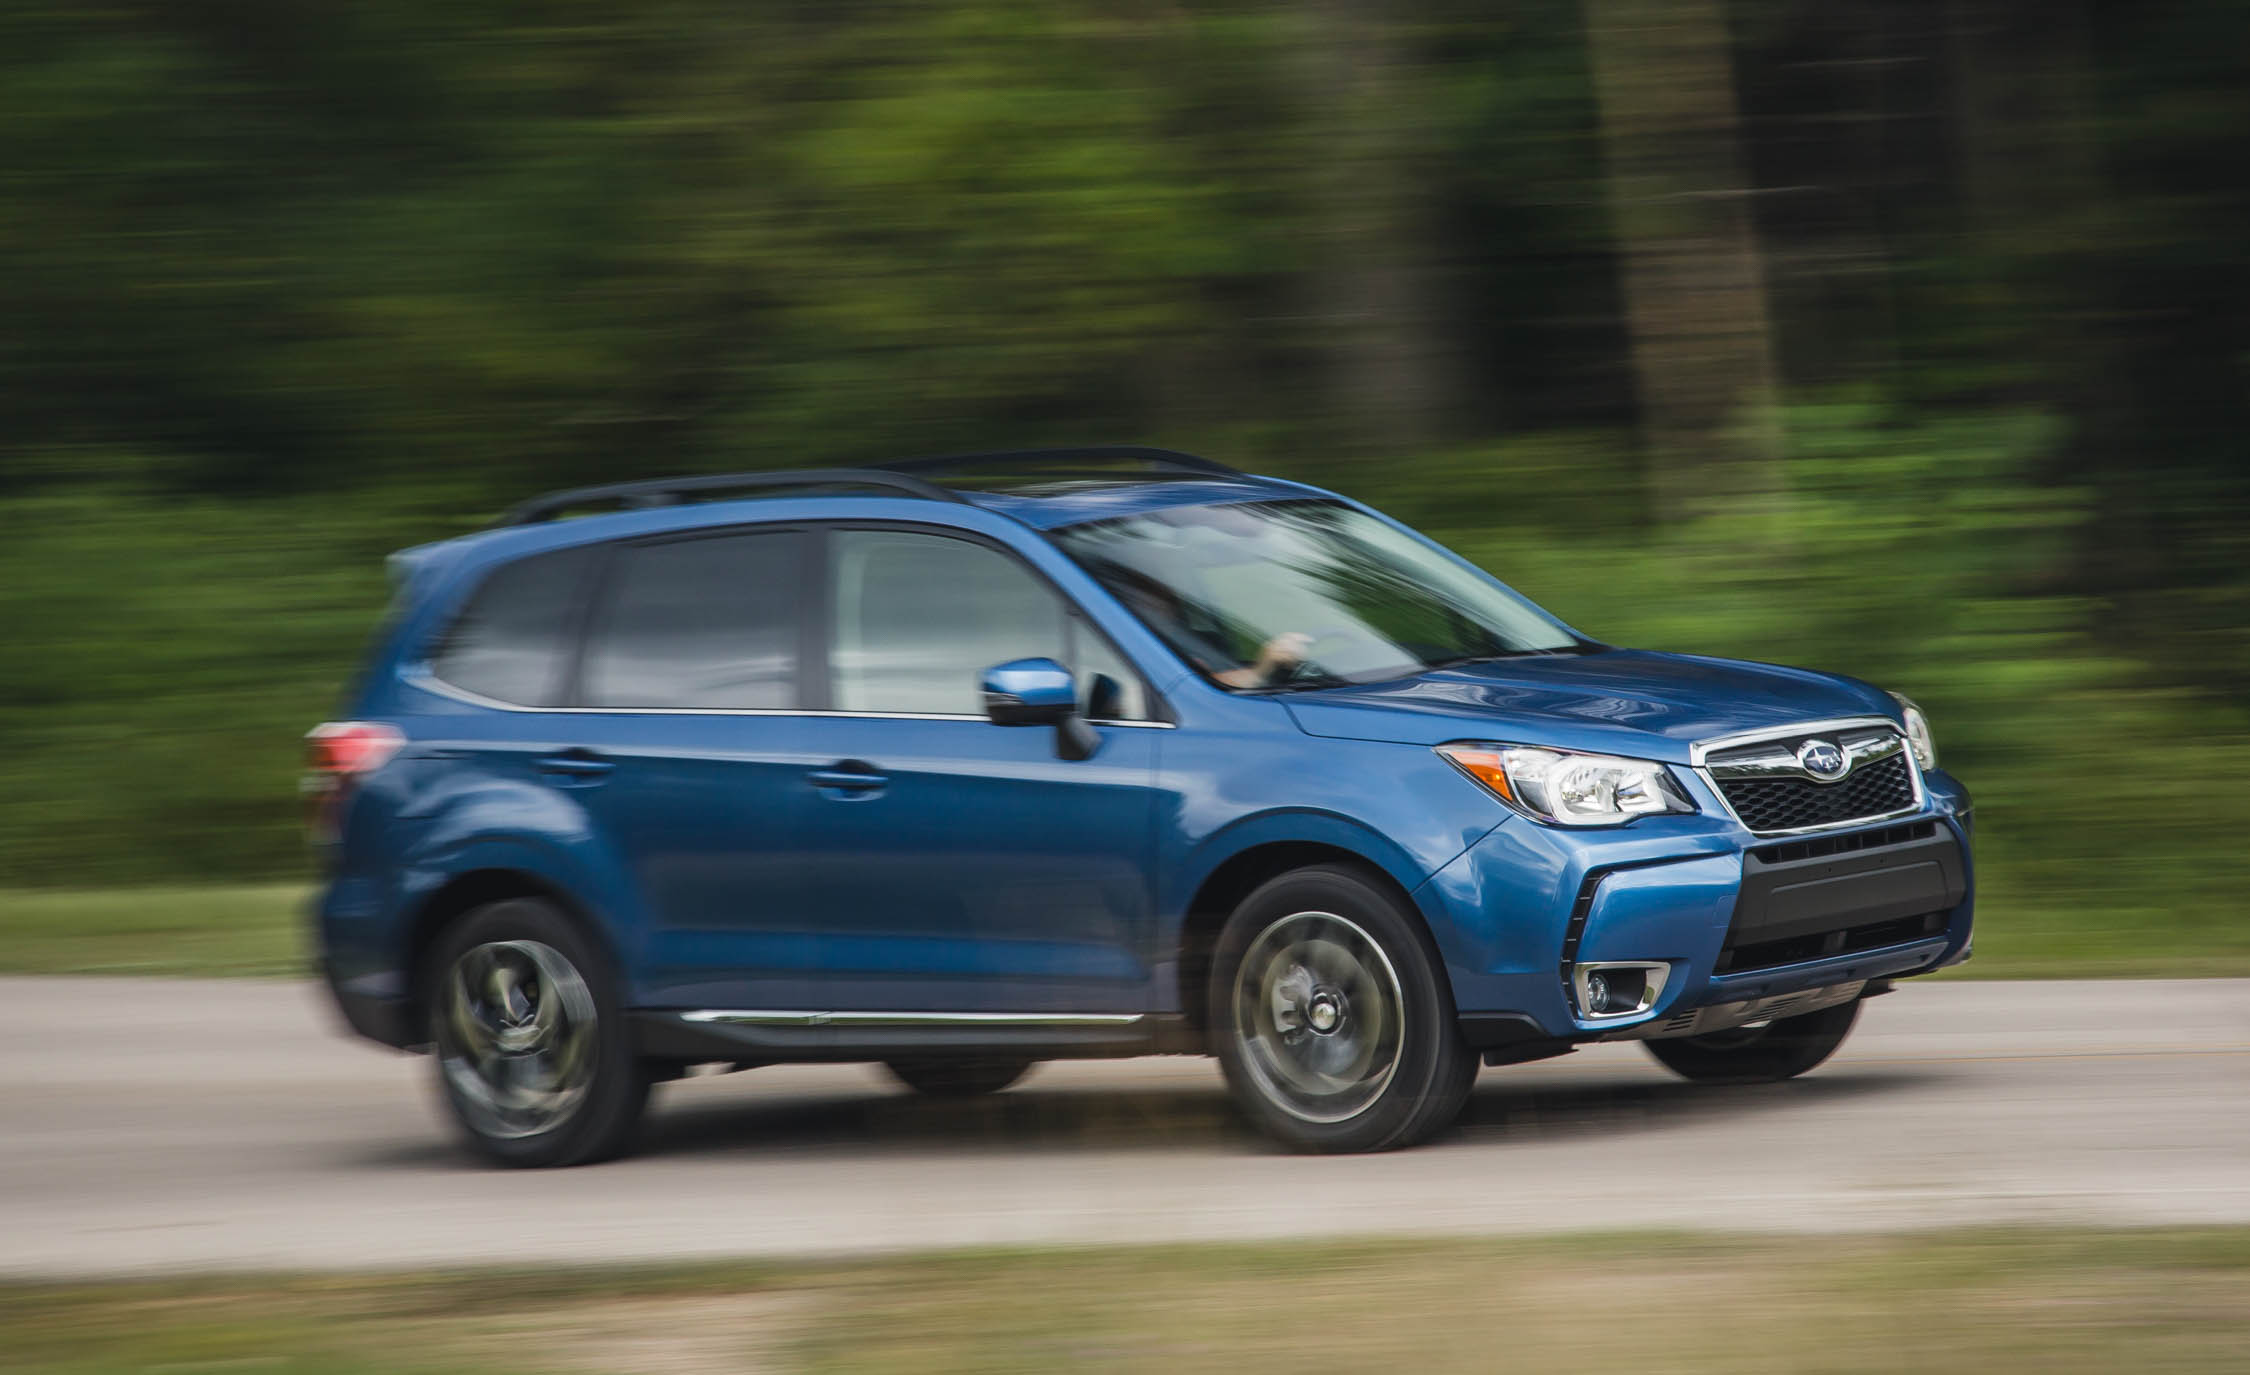 2016 Subaru Forester 2 0xt Touring Test Front And Side View (View 18 of 29)